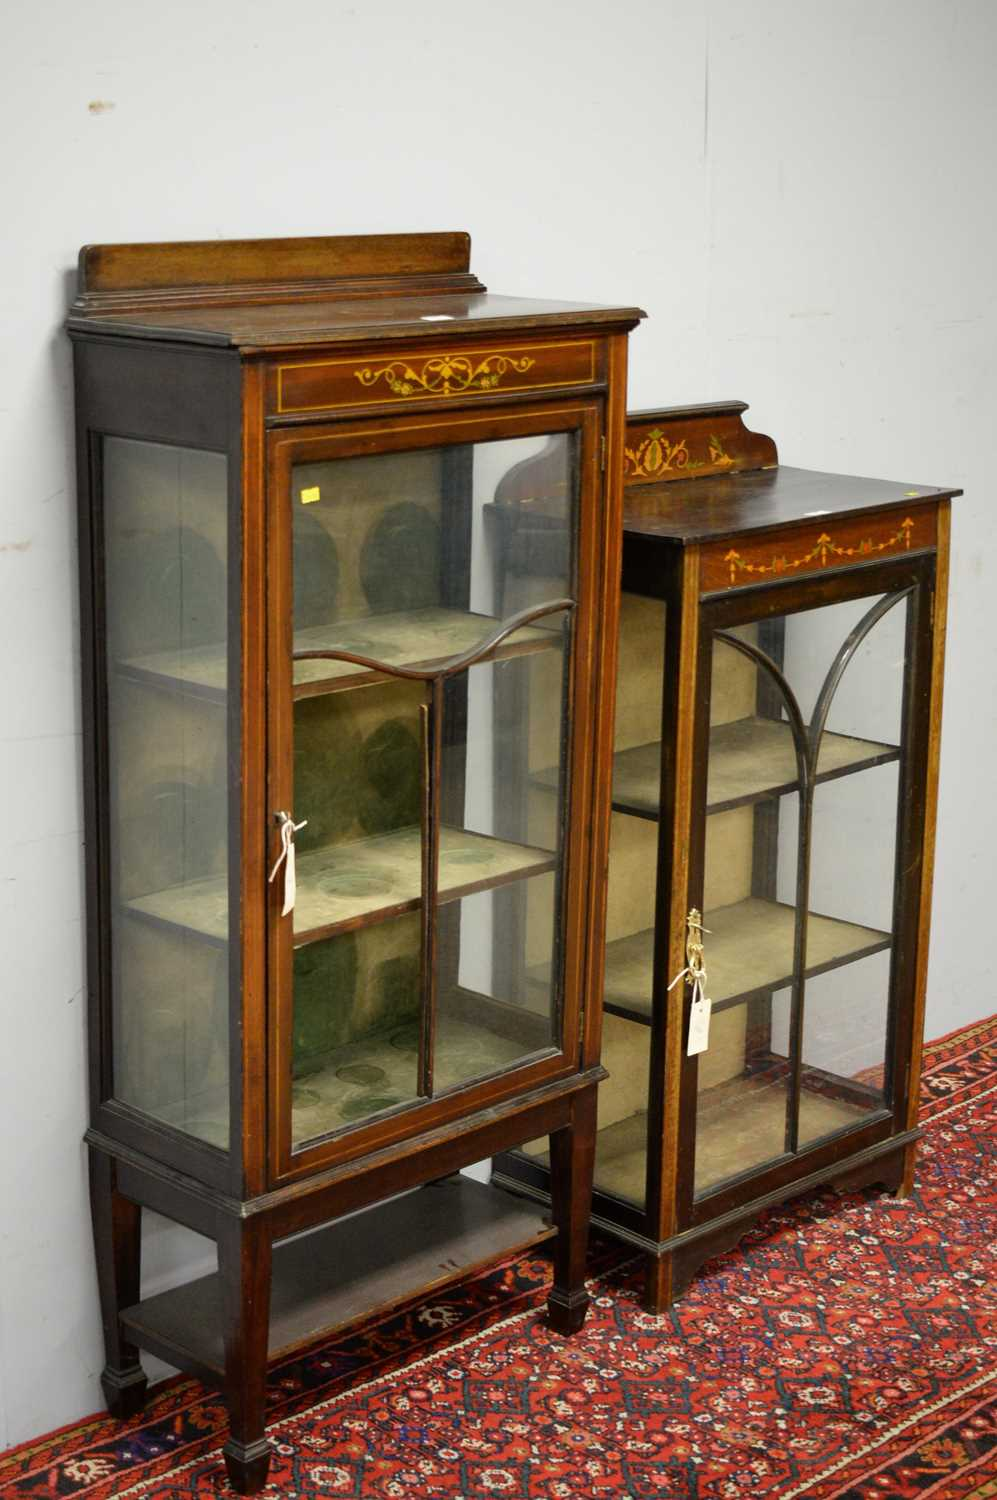 Two early 20th C display cabinets. - Image 3 of 6